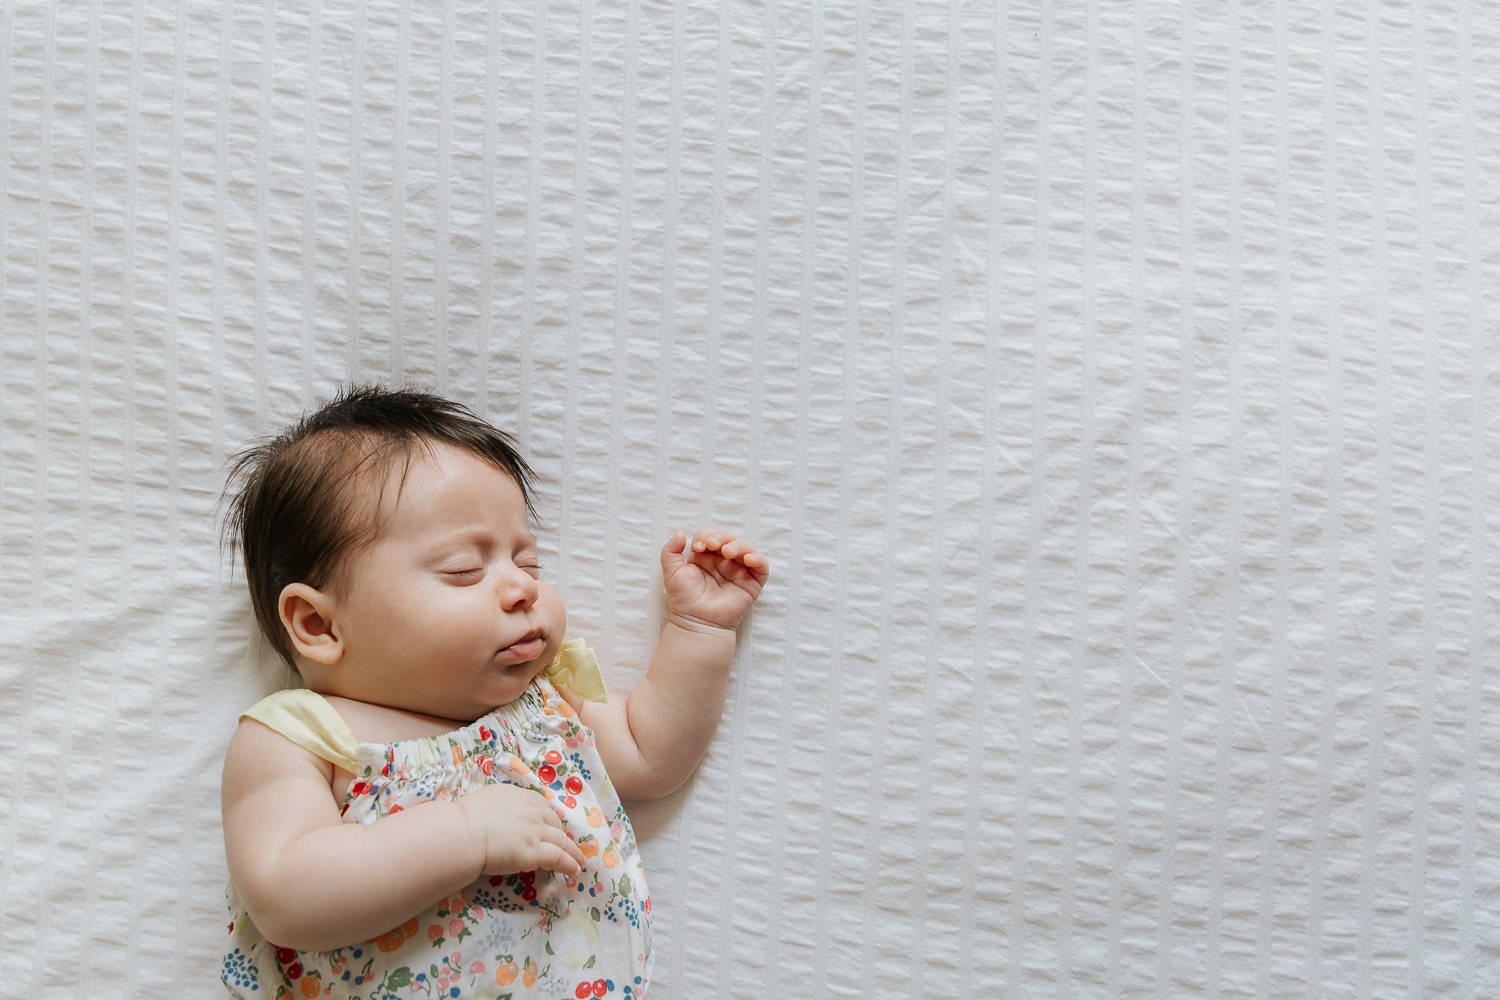 2 month old baby girl with lots of dark hair in floral jumper asleep on bed with arm stretched out - GTA Lifestyle Photography